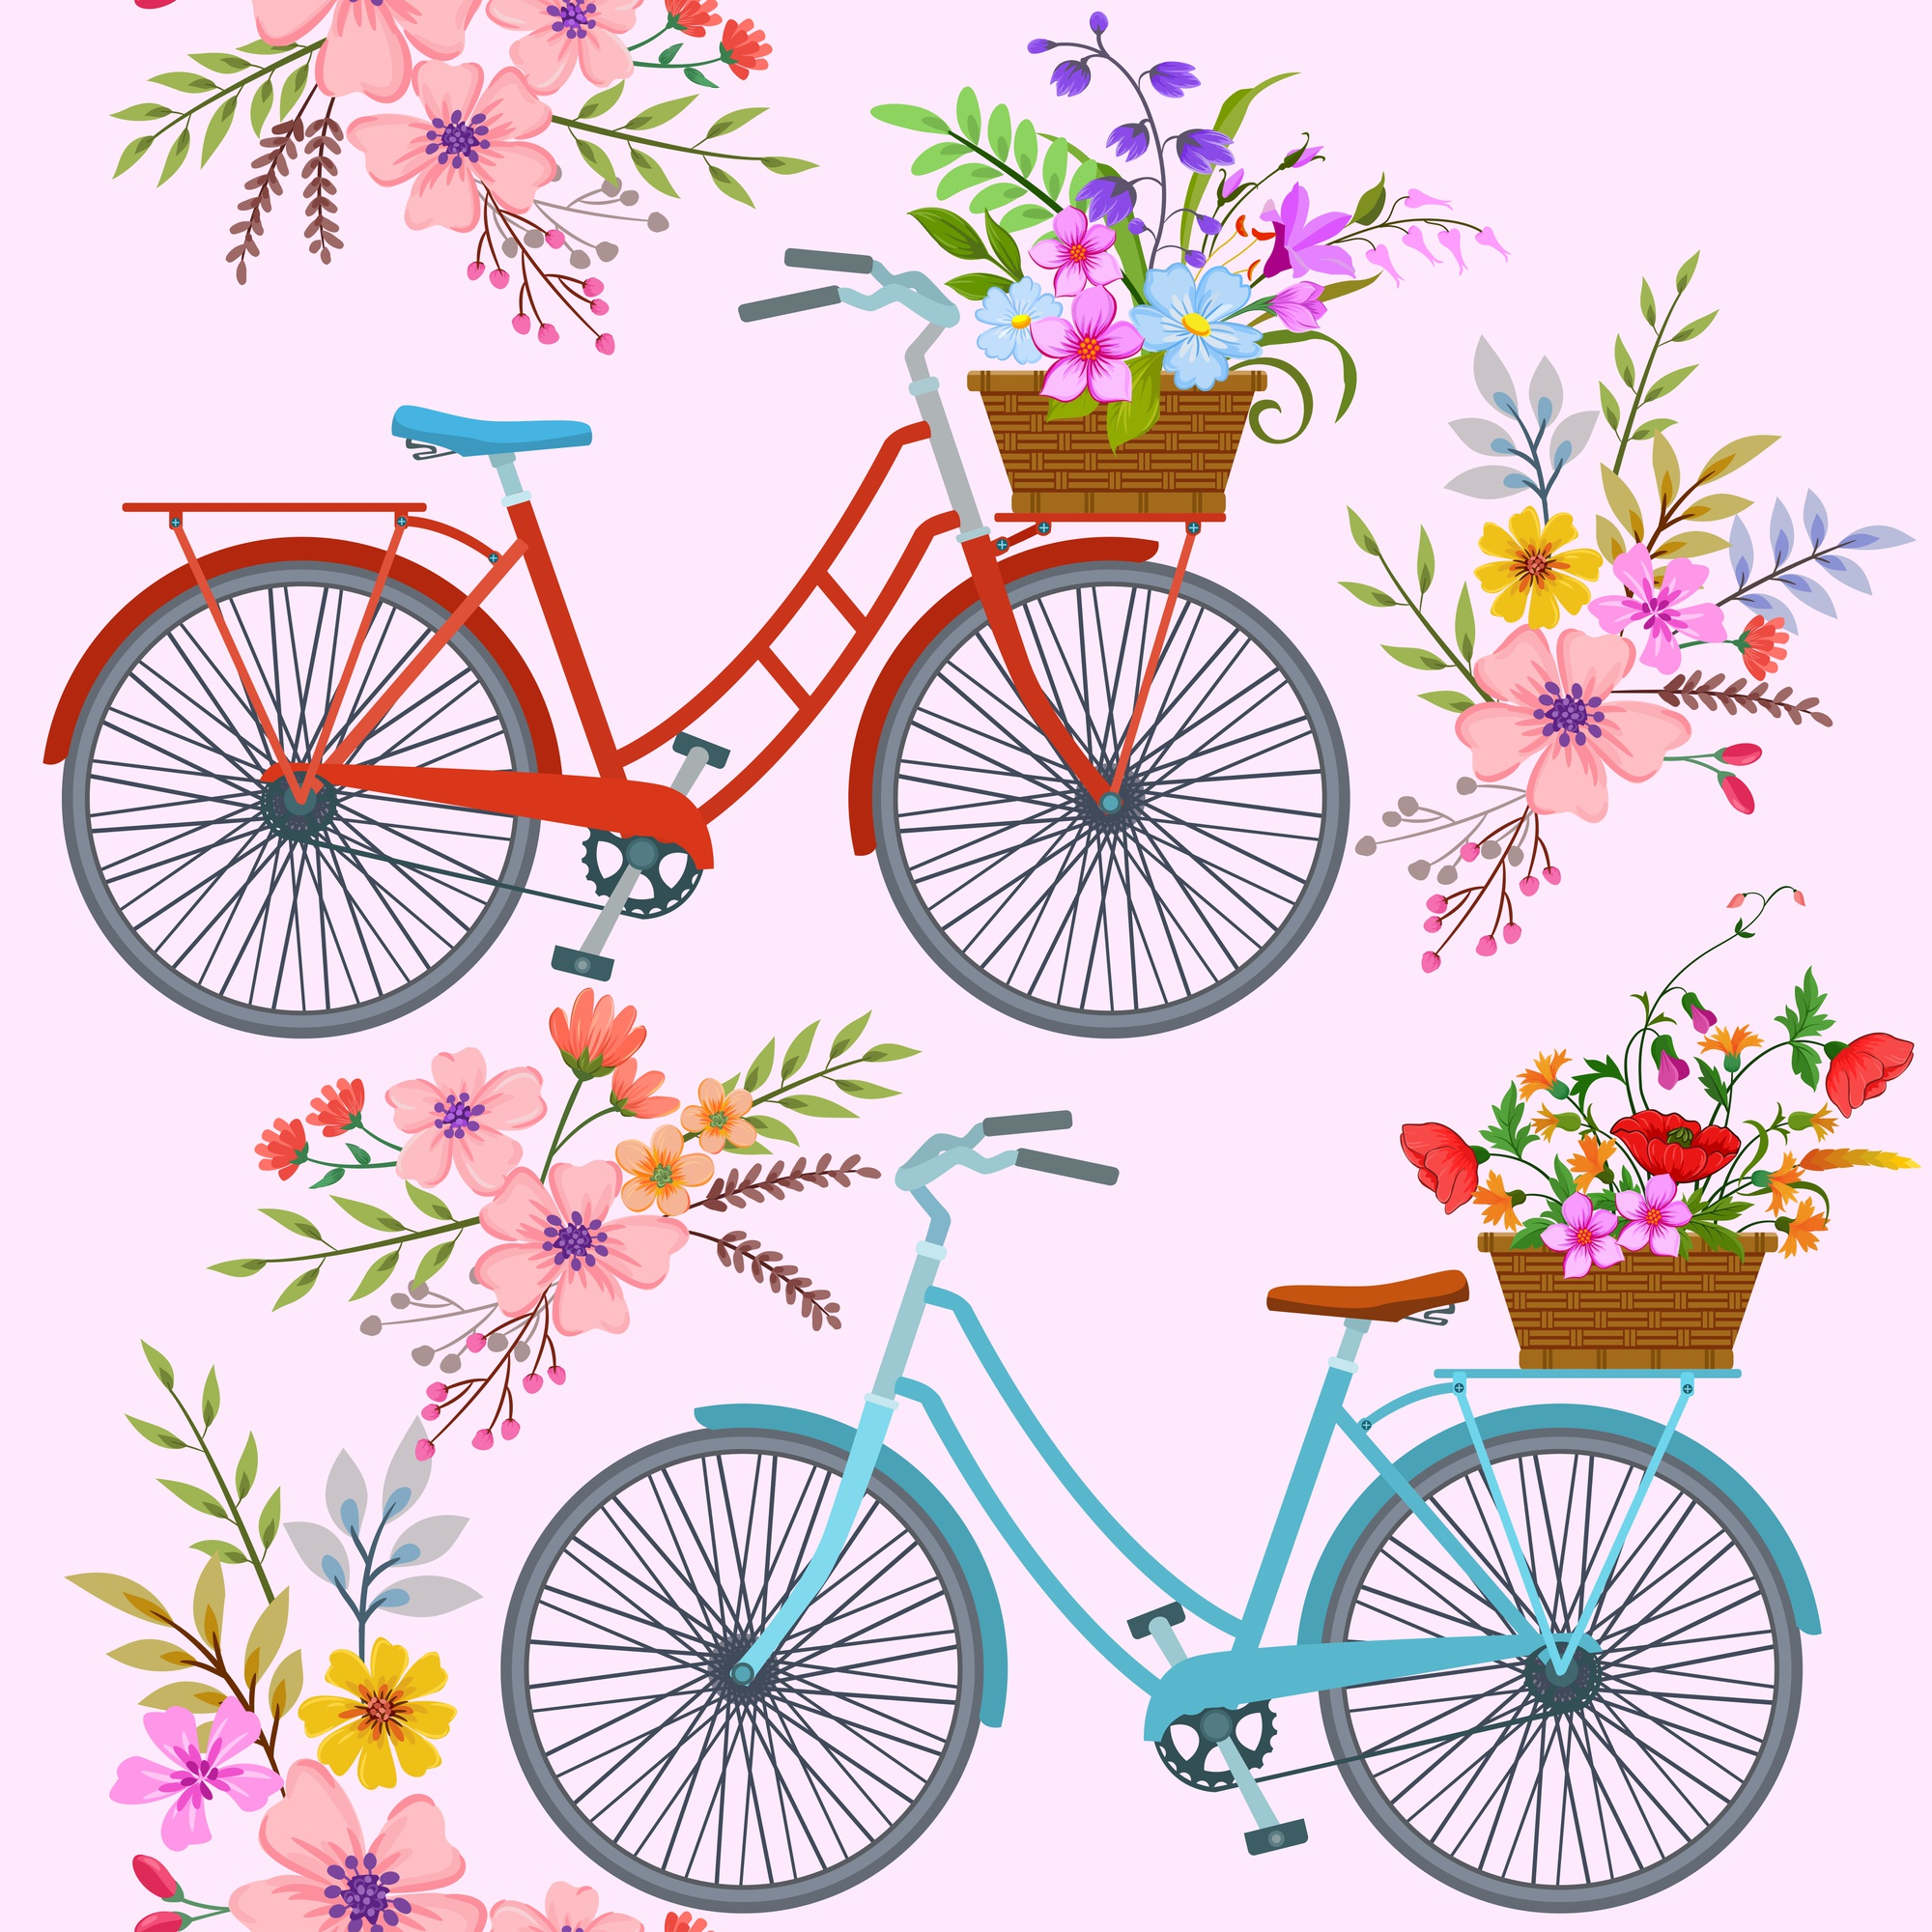 Bicycle with flowers pattern.